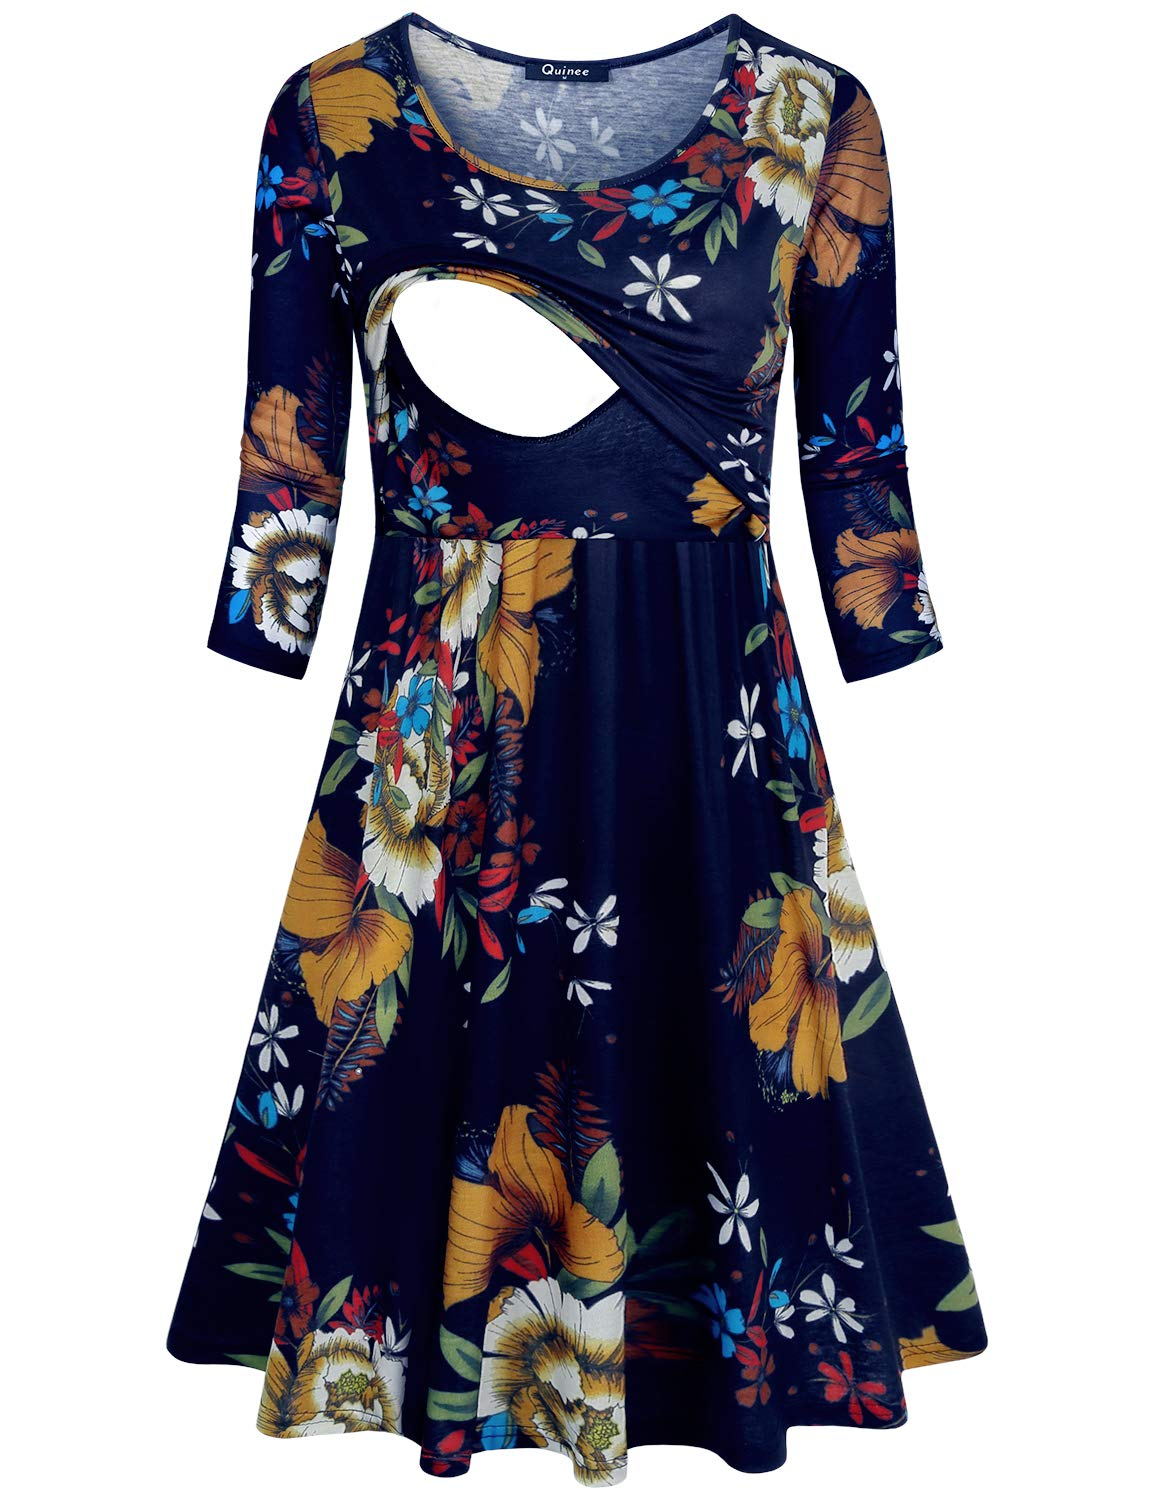 Quinee Maternity Dress, Womens Plus Size Scoop Neck 3/4 Sleeve Loose Fit Graphic Nursing Clothes for Breastfeeding Dress Lightweight Flare Preganncy Maternity Clothing Blue Flower XXL